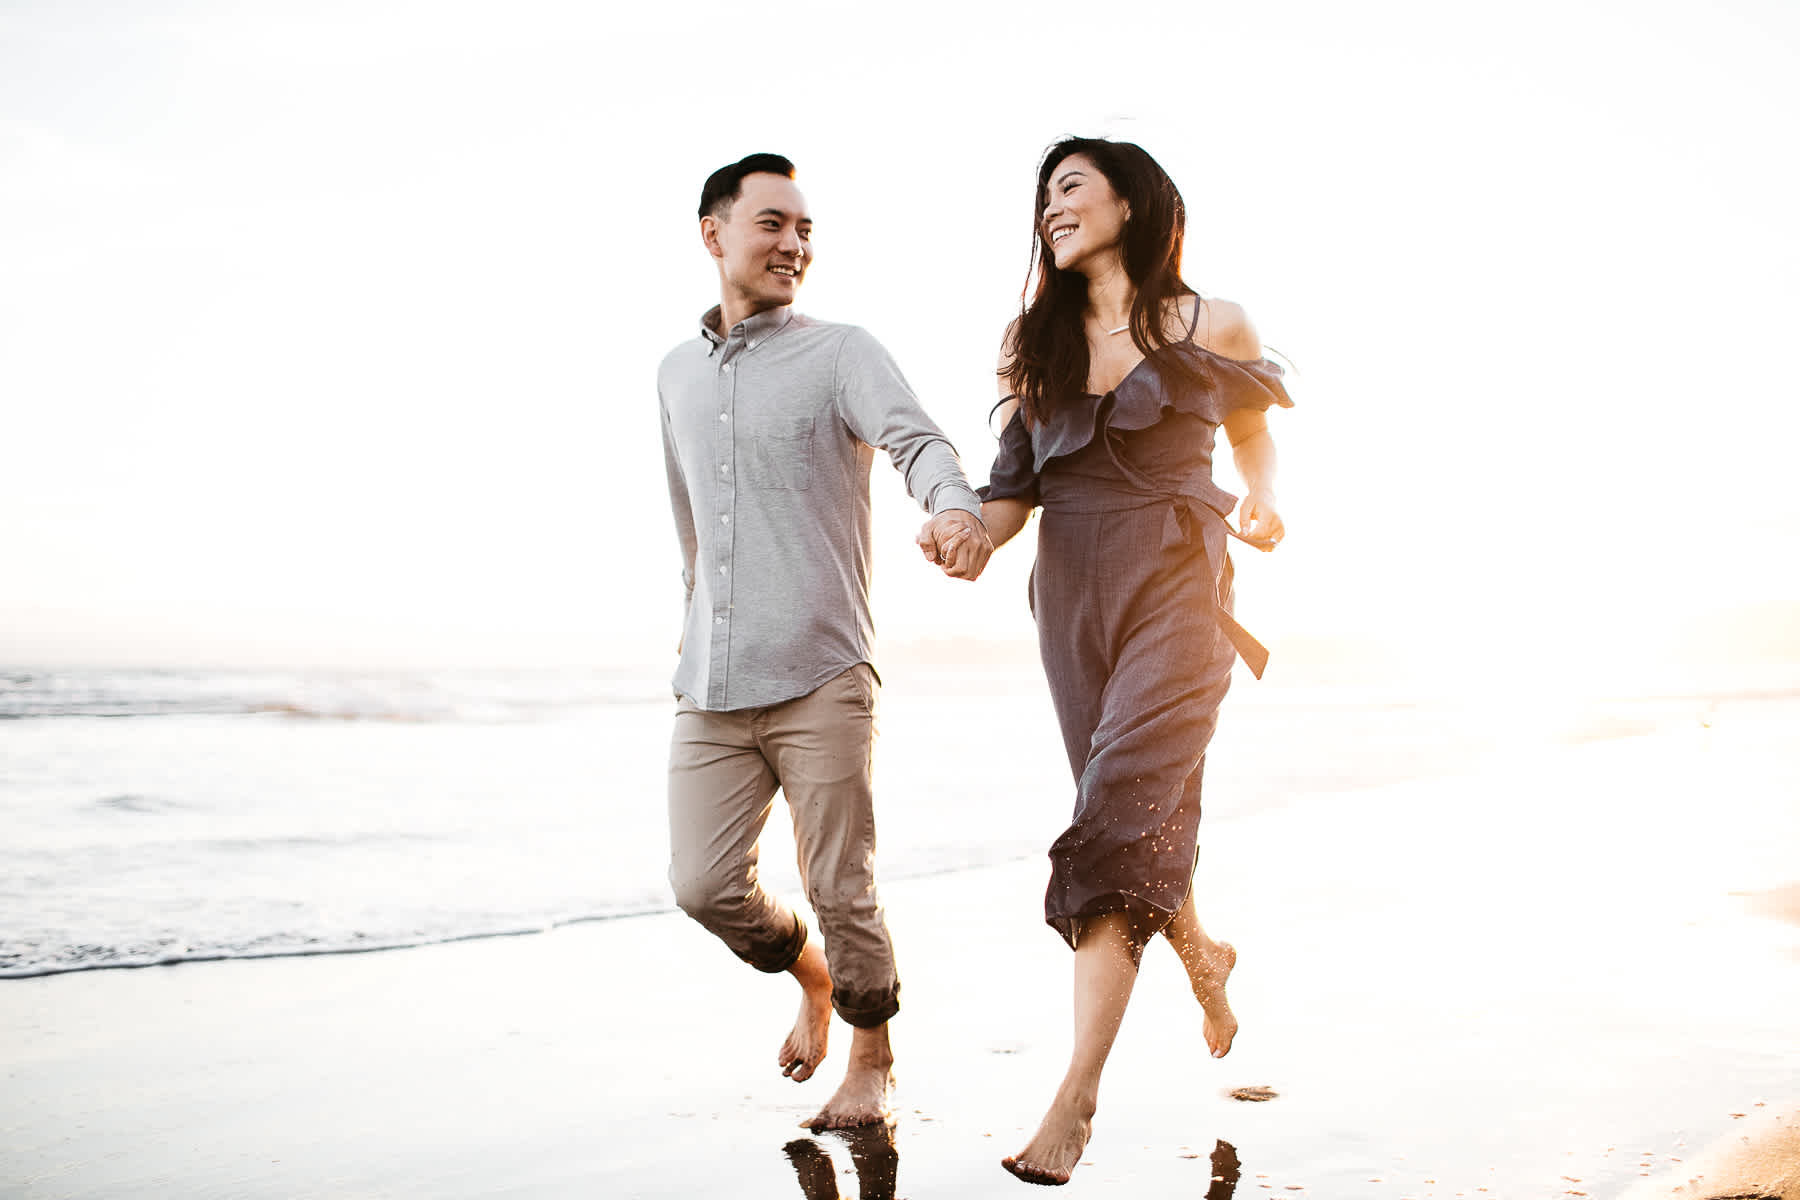 stinson-beach-muir-woods-sf-fun-quirky-engagement-session-32